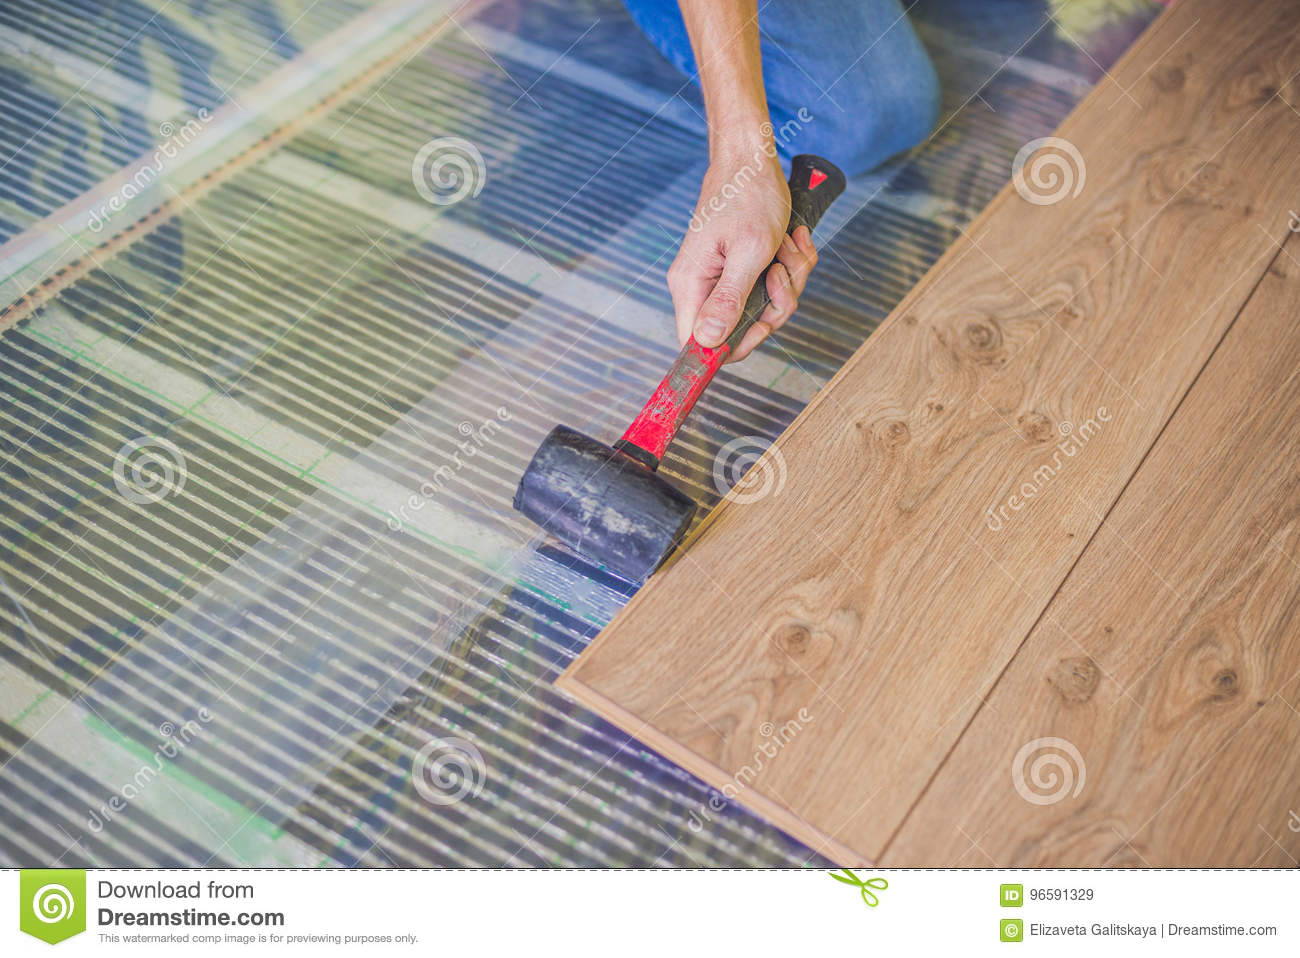 Man installing new wooden laminate flooring. infrared floor heating system under laminate floor